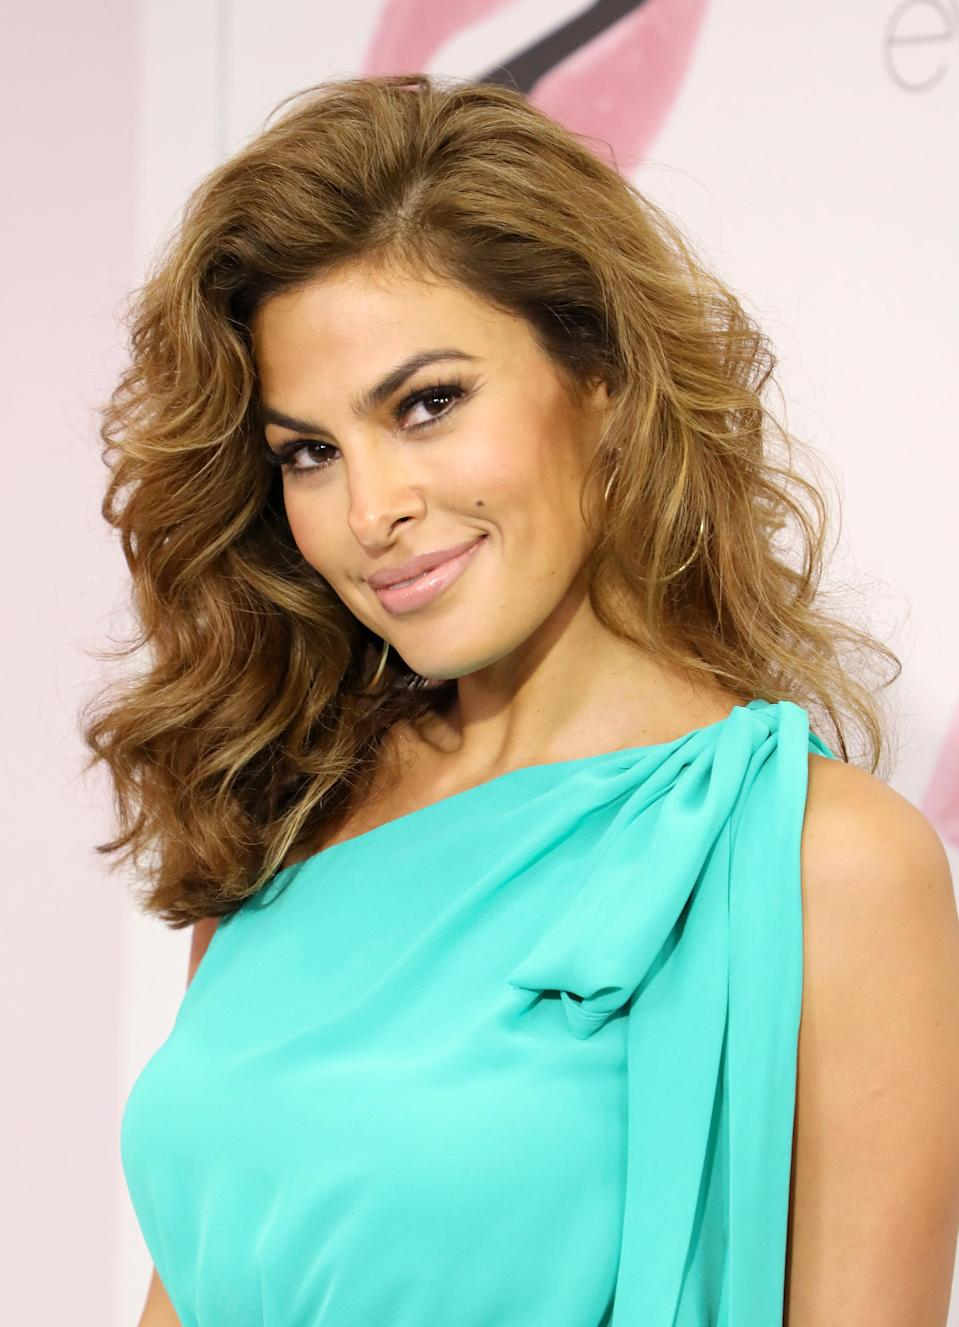 "<p>With her signature bold brows, <a href=""https://www.yahoo.com/lifestyle/tagged/eva-mendes"" data-ylk=""slk:Eva Mendes"" class=""link rapid-noclick-resp"">Eva Mendes</a> has always had the ability to stun on the red carpet. The Cuban actress has transformed into a fashion designer and beauty mogul to deliver some of her best and boldest looks directly to her fans. While achieving her fantastic arches might take some careful tweezing and <a href=""https://www.yahoo.com/lifestyle/tagged/eyebrows"" data-ylk=""slk:a brow pencil"" class=""link rapid-noclick-resp"">a brow pencil</a>, you can easily score the rest of her signature fresh-faced makeup with a smudge of brown eyeliner and soft-pink <a href=""https://www.yahoo.com/lifestyle/tagged/lipstick"" data-ylk=""slk:lipstick"" class=""link rapid-noclick-resp"">lipstick</a>. (Photo: Getty Images) </p>"